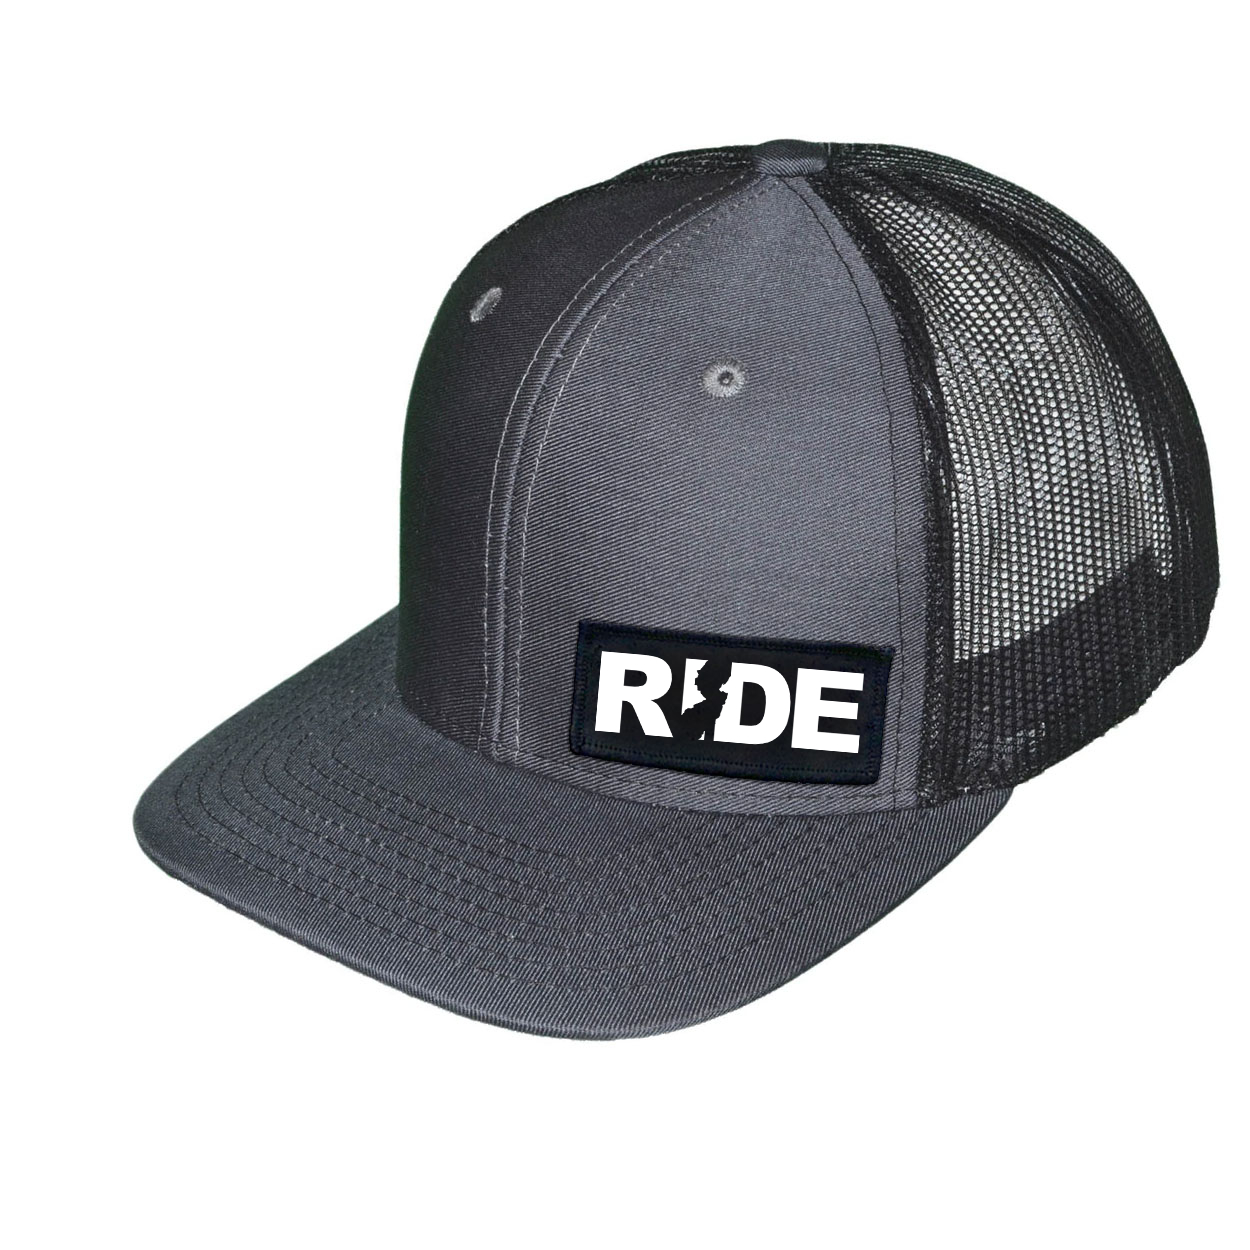 Ride New Jersey Night Out Woven Patch Snapback Trucker Hat Dark Gray/Black (White Logo)